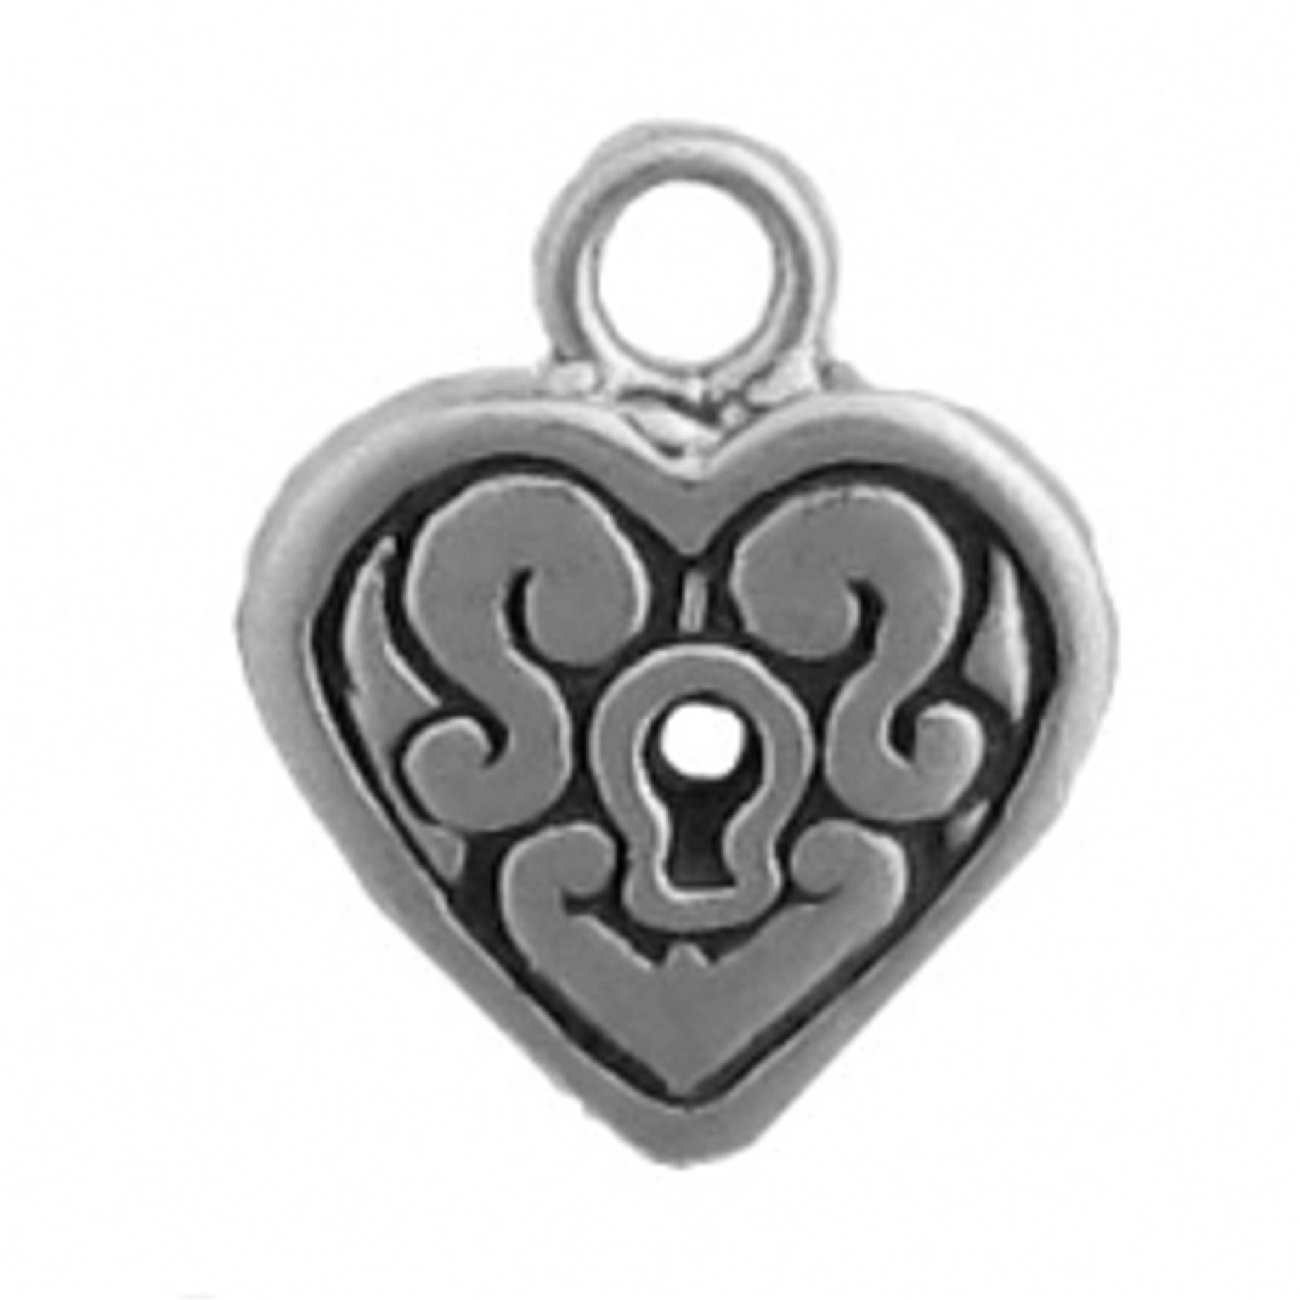 Sterling Silver 7 4.5mm Charm Bracelet With Attached Heart With Key Hole Charm